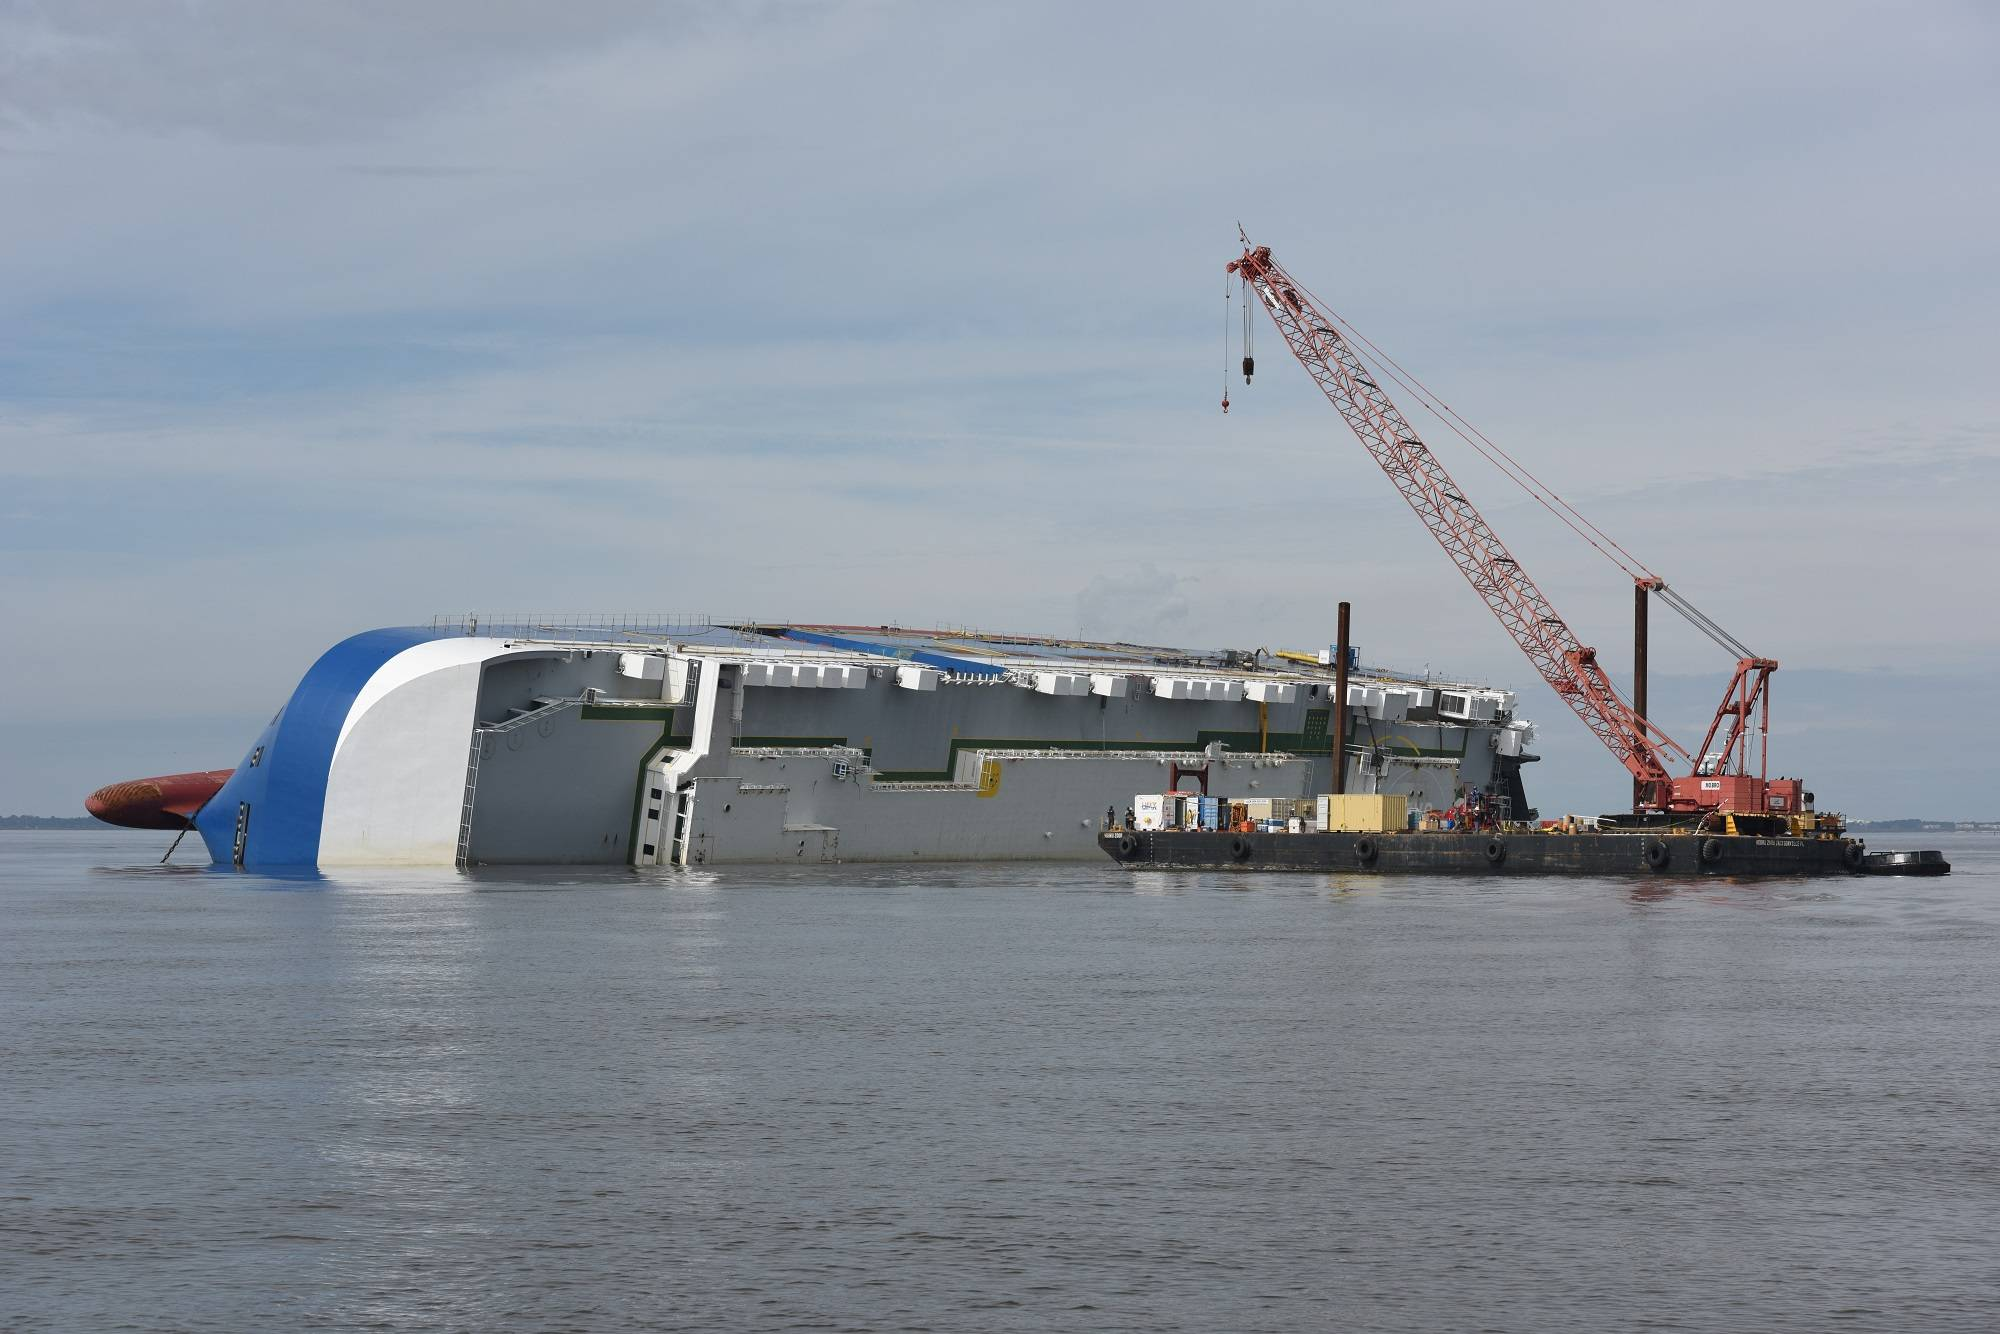 Golden Ray salvage to face more delays